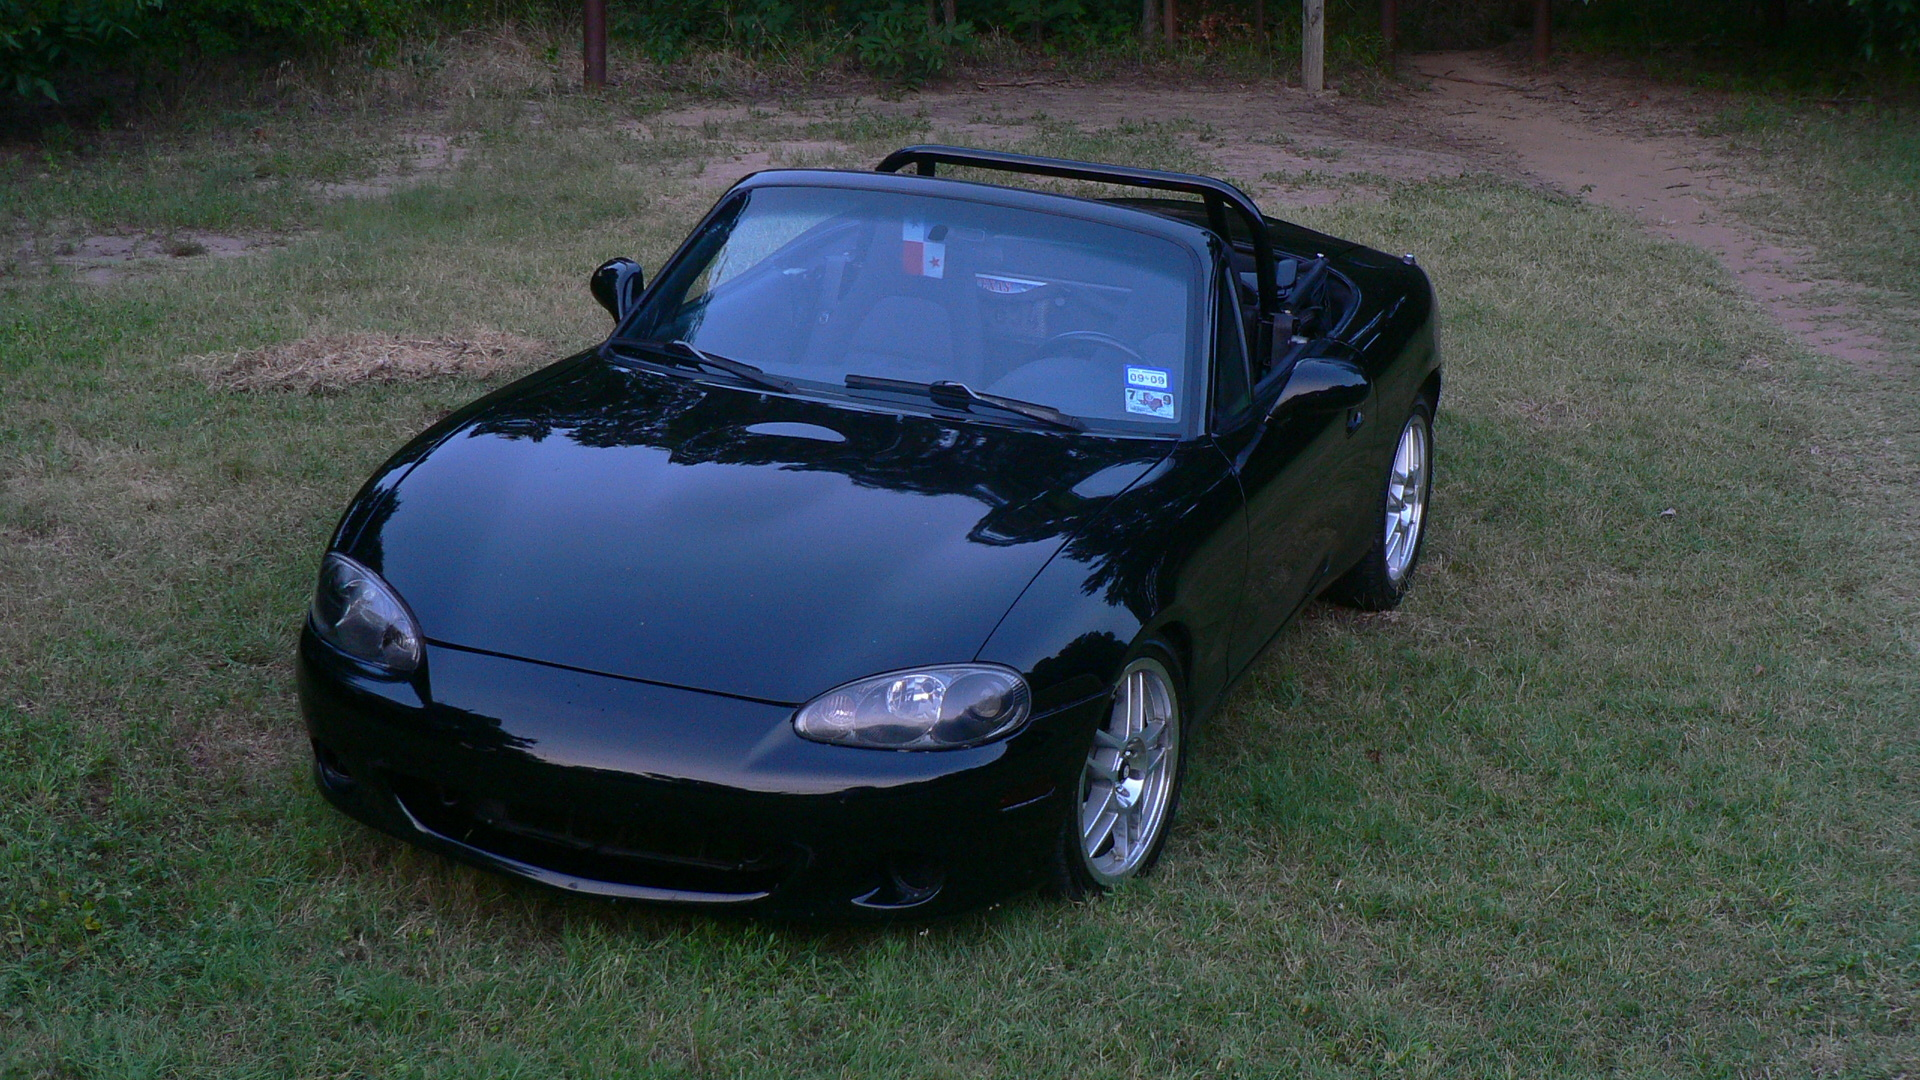 autobahnkonig 1999 mazda miata mx 5 specs photos. Black Bedroom Furniture Sets. Home Design Ideas